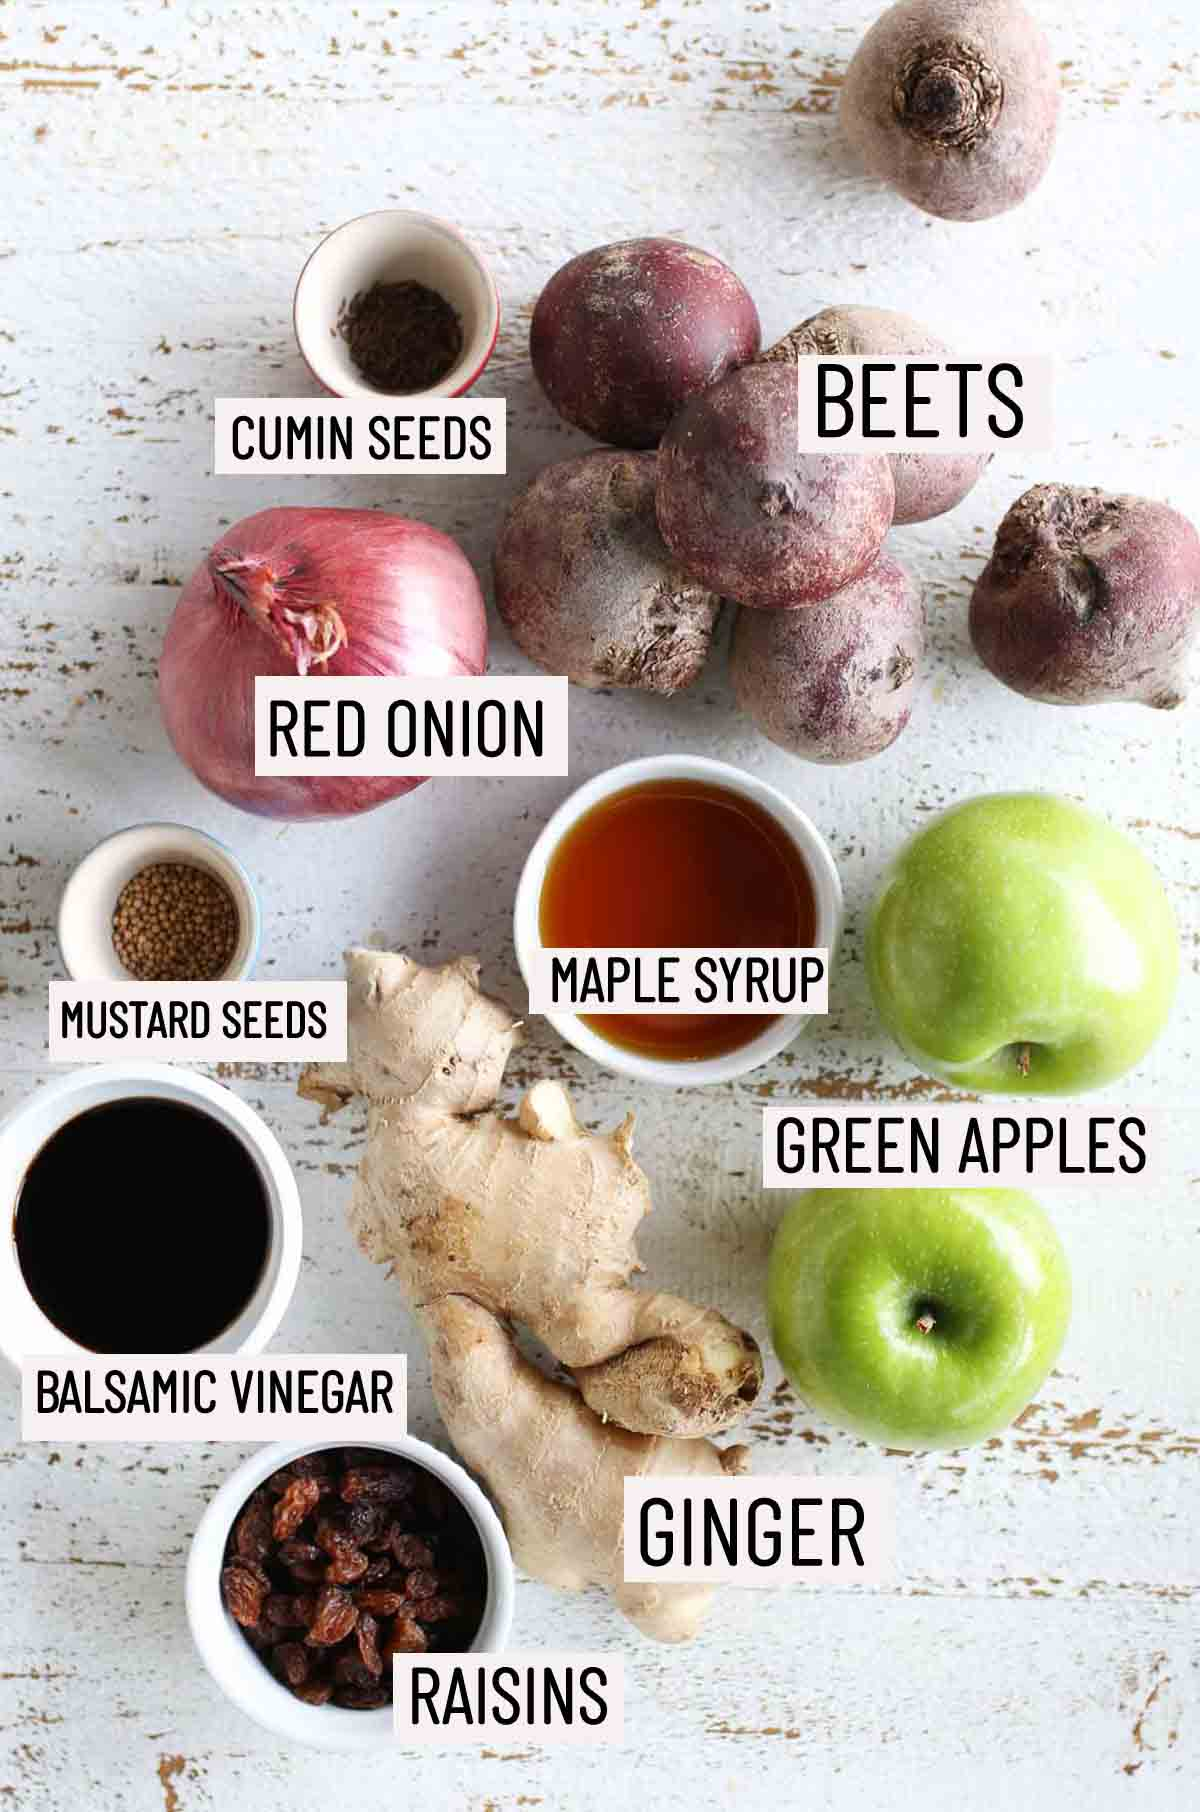 Birds eye view of portioned ingredients needed to make apple chutney including beets, red onion, cumin seeds, mustard seeds, maple syrup, green apples, ginger, balsamic vinegar, and raisins.